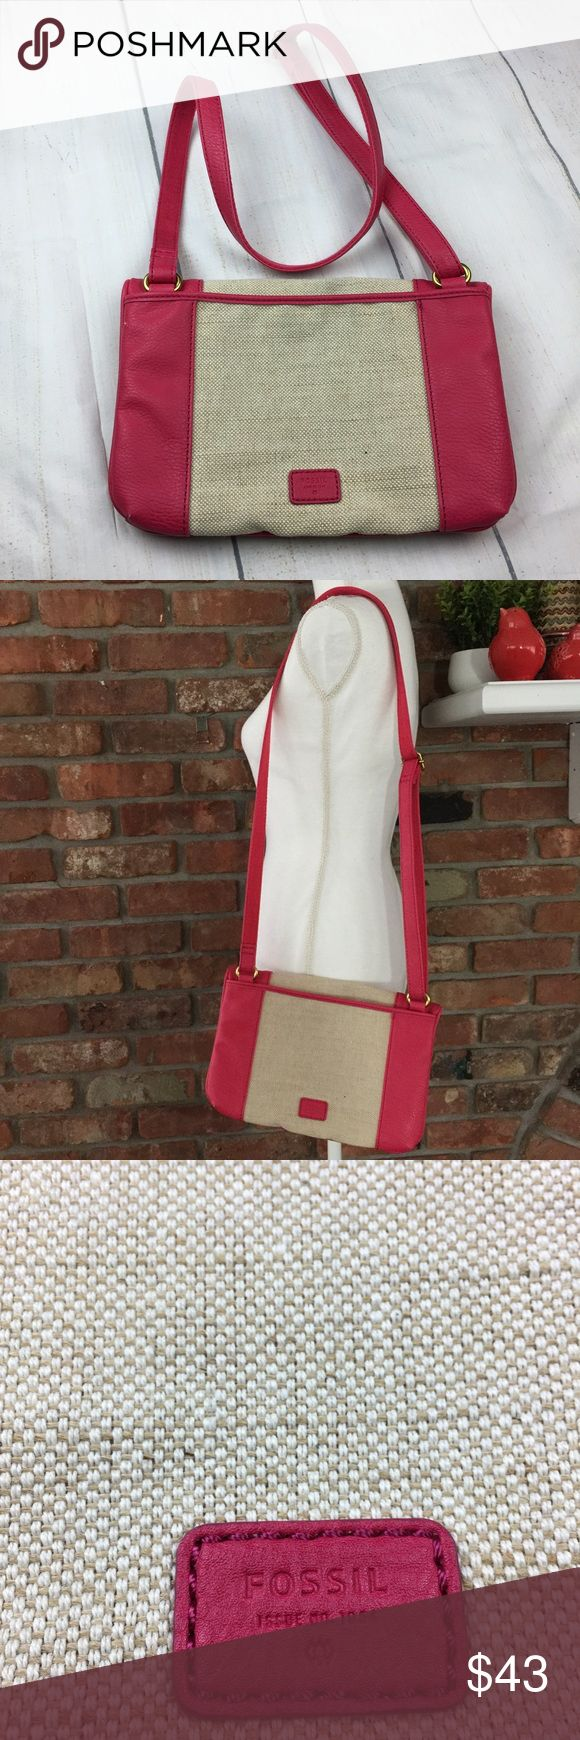 Fossil Kira Pink & Tan Canvas Fold Over Purse In wonderful condition inside is in excellent condition. No stains, smoke free environment. Does have two very small marks in the leather, as seen in pictures. It has zippered pockets under the front fold over the flap and slip pocket on the back side. It is canvas and leather. Crossbody strap does adjust. Fossil Bags Crossbody Bags